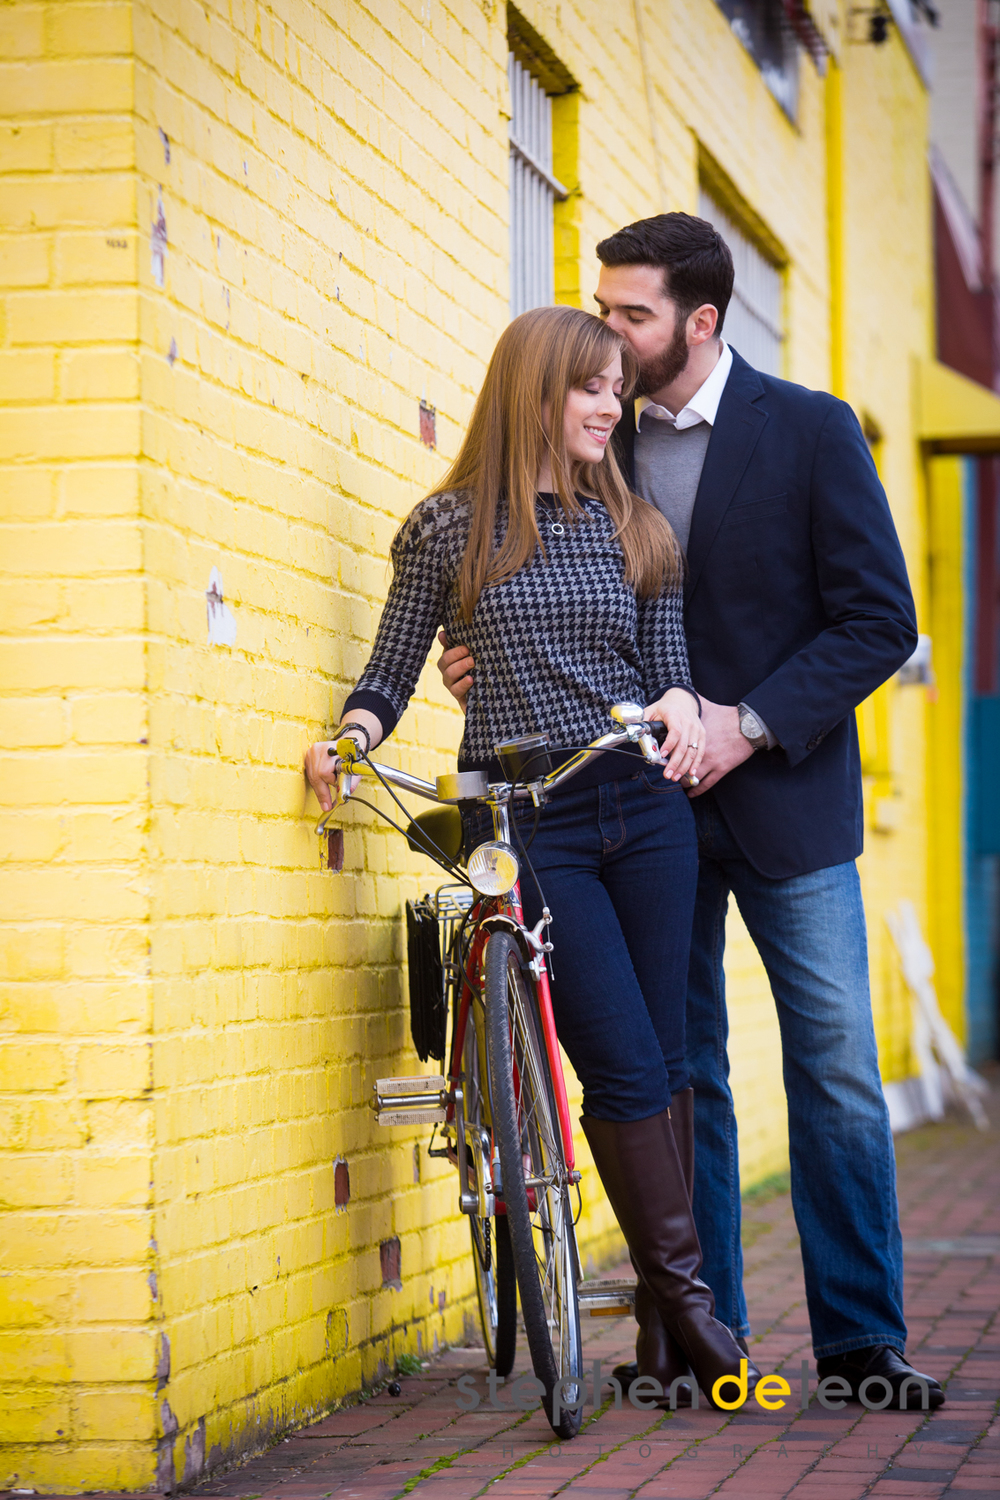 Old-town-bike-engagement-session0005.jpg